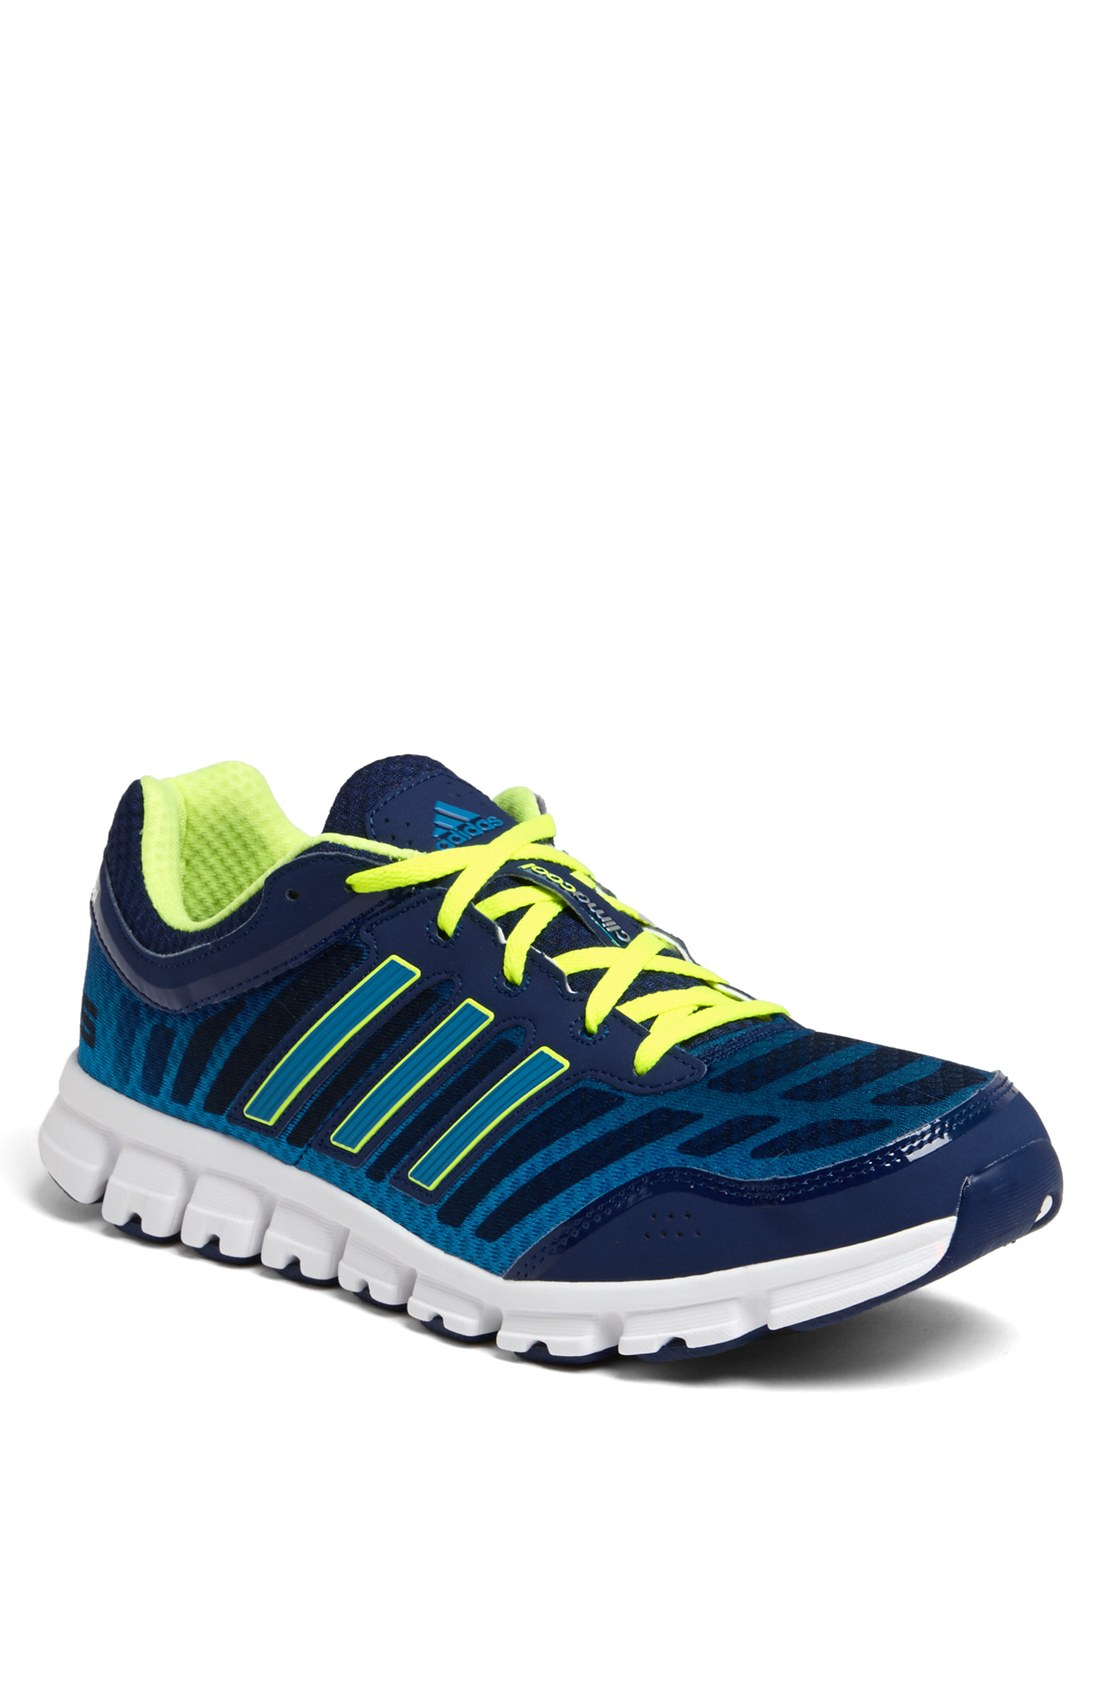 adidas climacool aerate 2 running shoe in blue for men. Black Bedroom Furniture Sets. Home Design Ideas